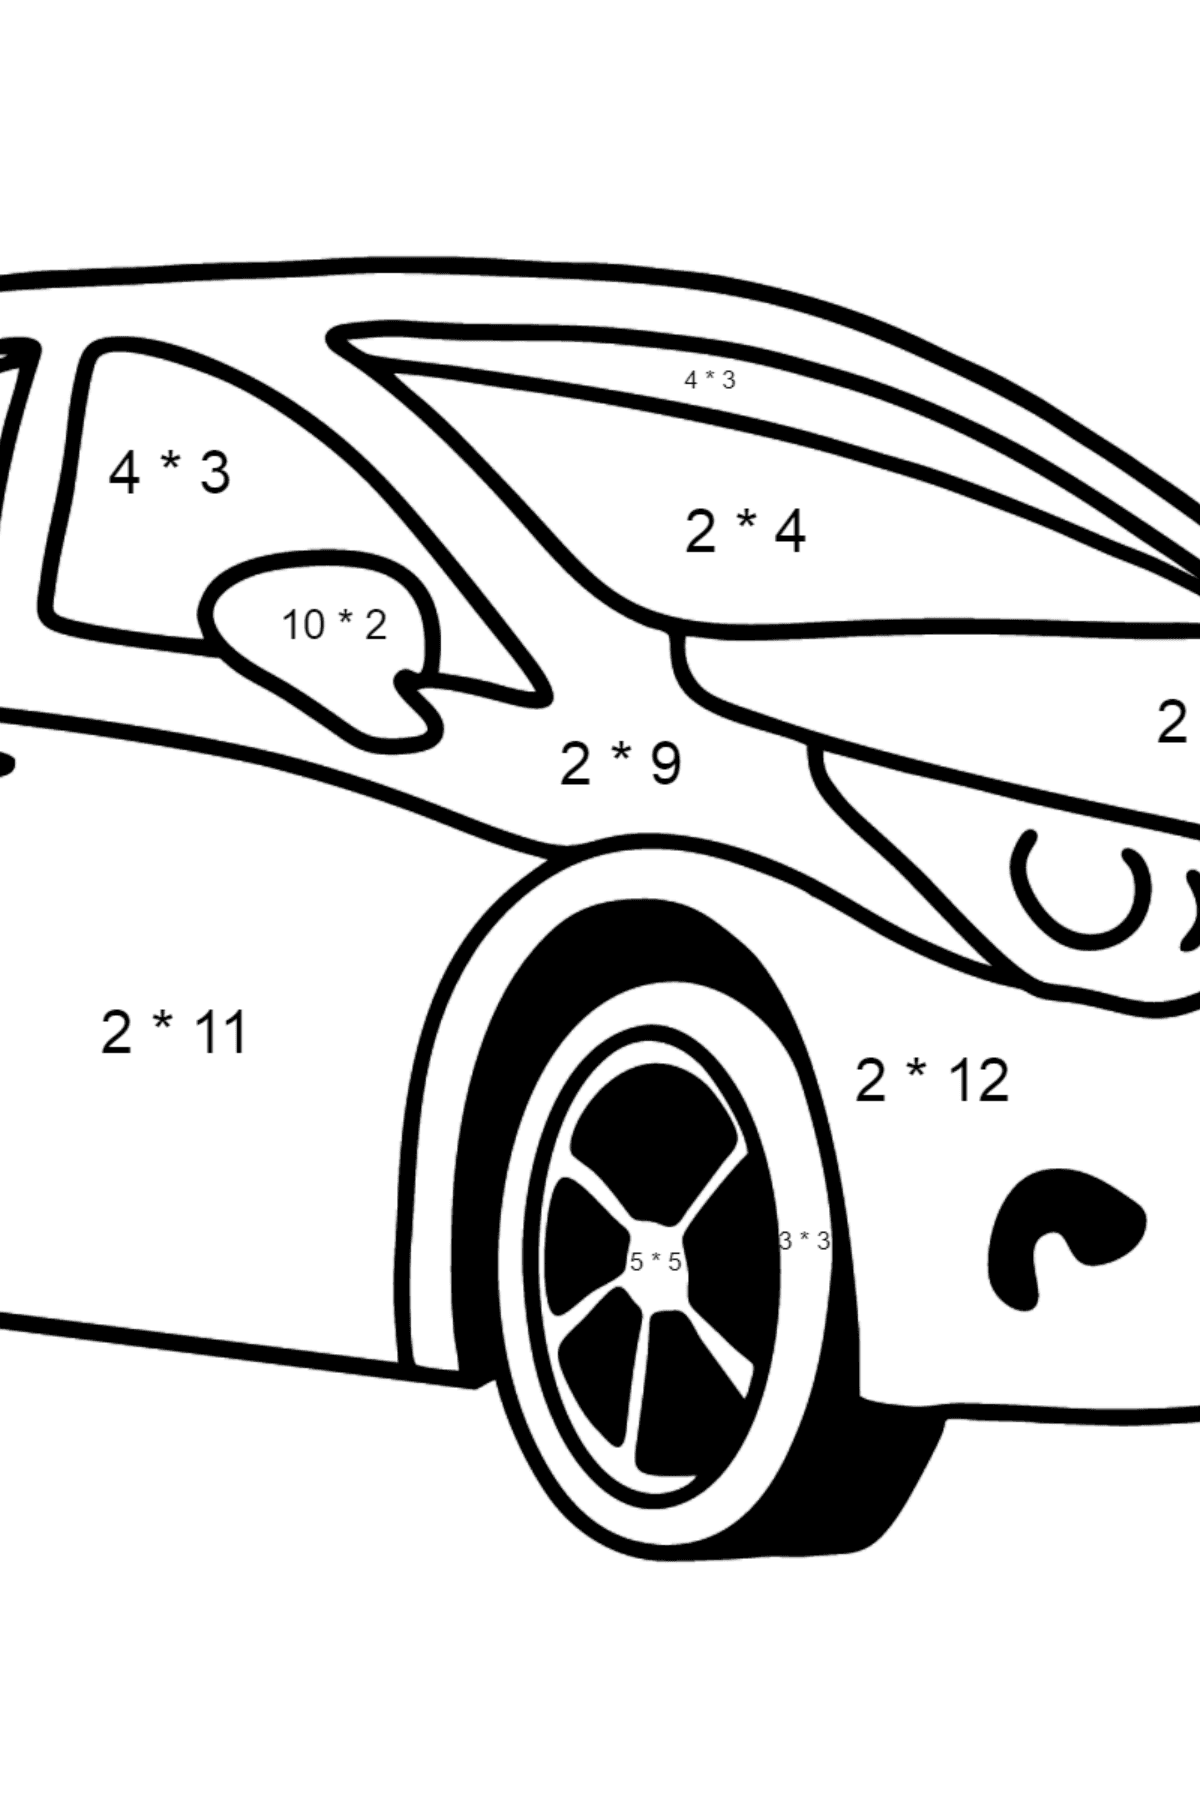 Toyota Avensis Car coloring page - Math Coloring - Multiplication for Kids